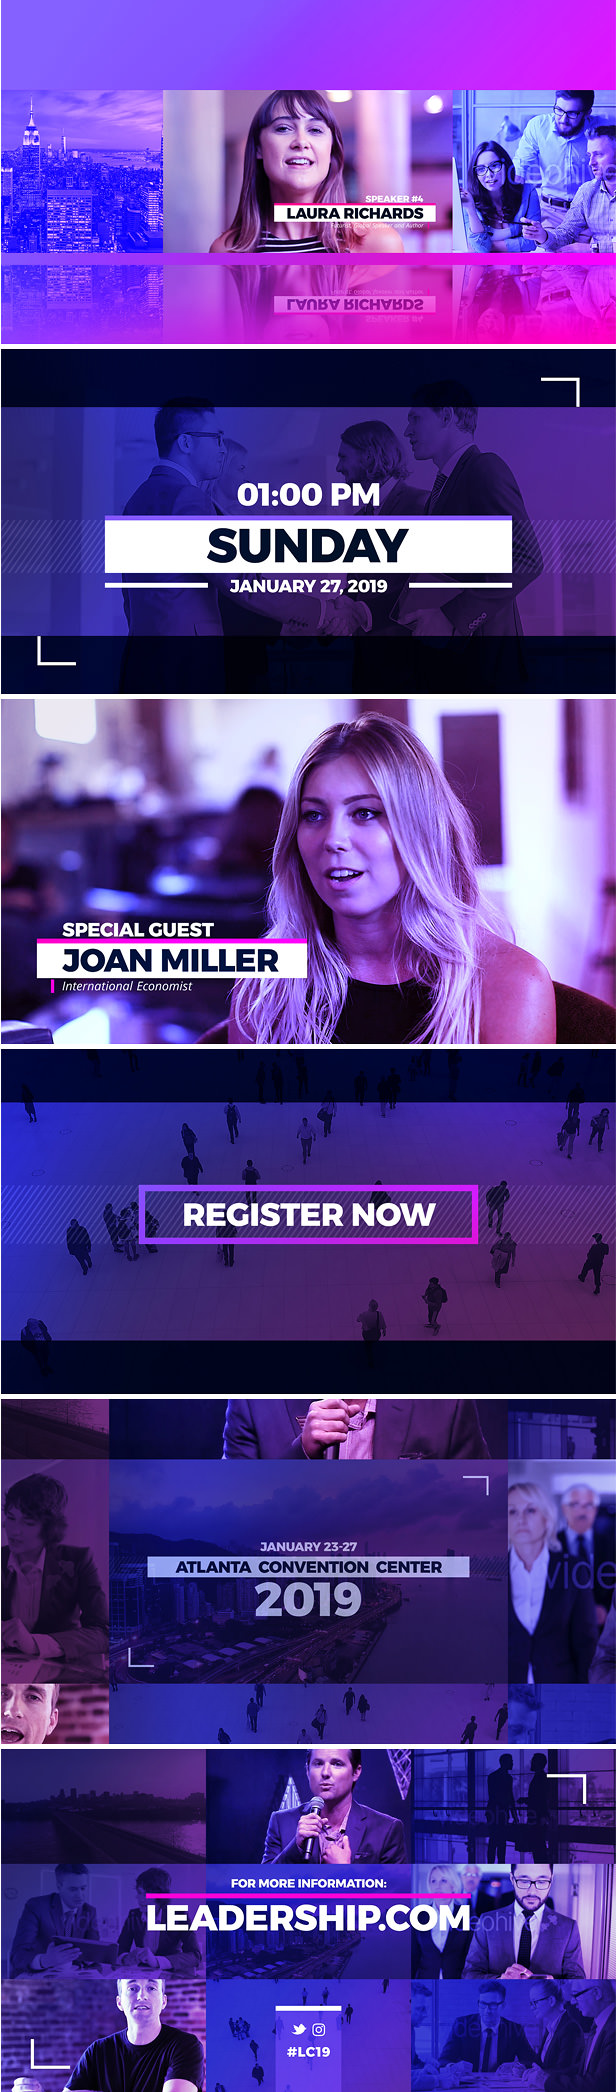 Event Promo After Effects Template for different types of meetings and events